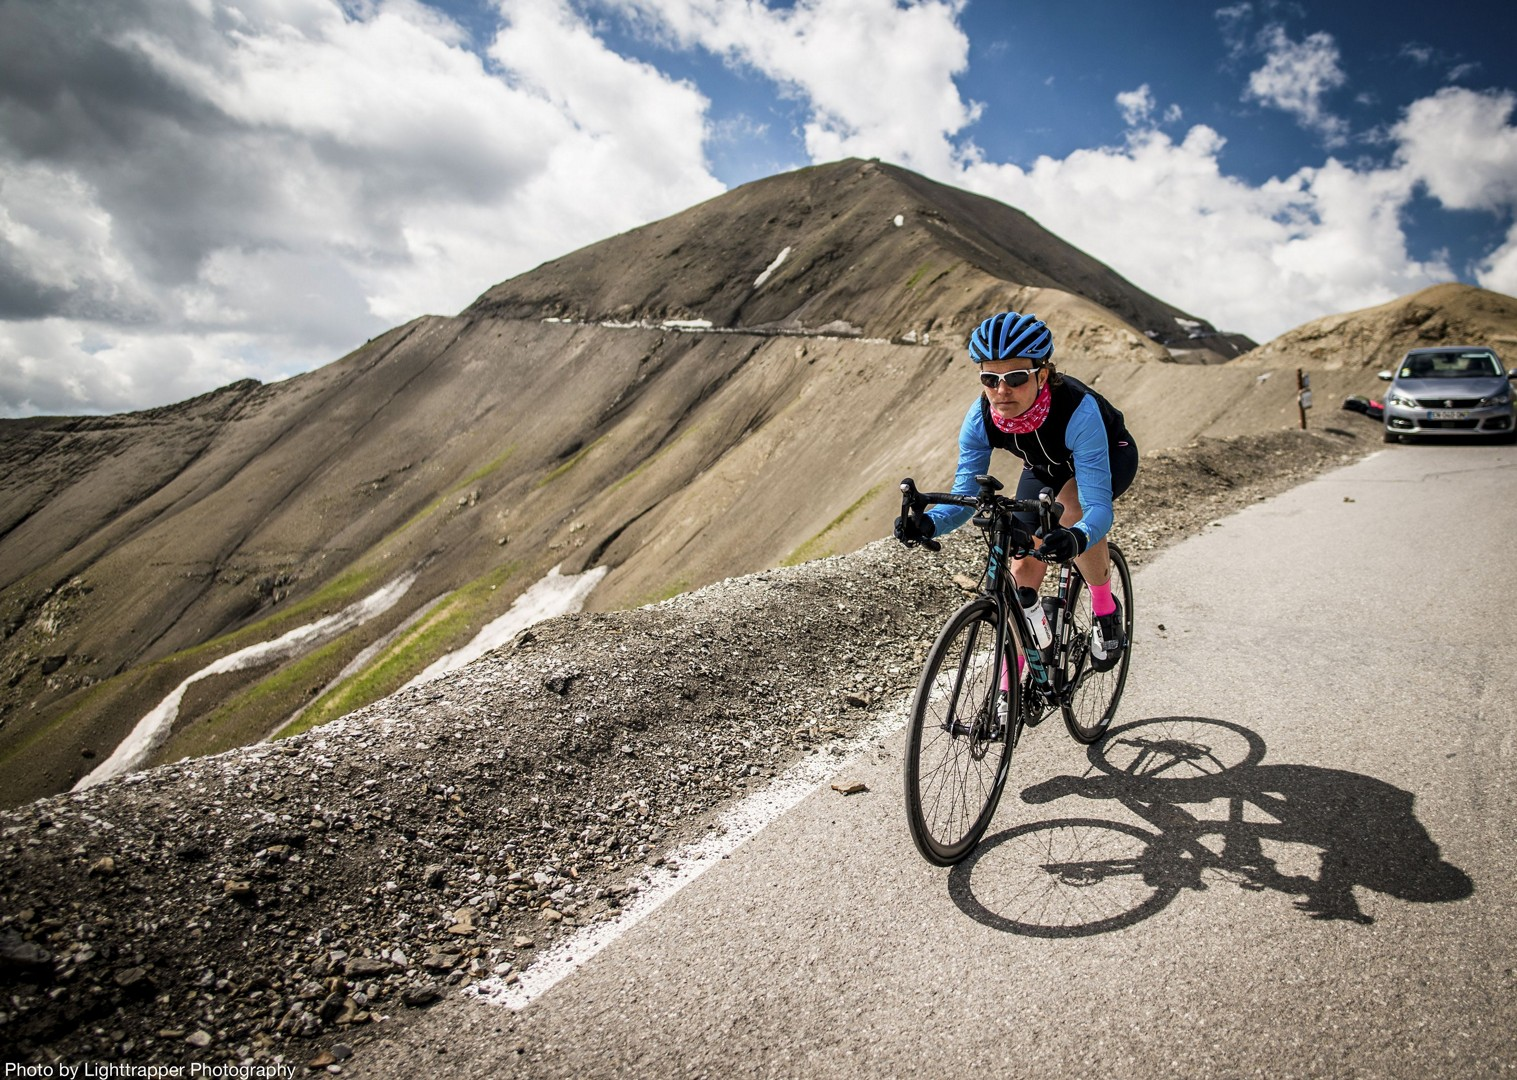 high-speed-descents-alps-france-raid-alpine-road-cycling-holiday.jpg - France - Raid Alpine - Guided Road Cycling Holiday - Road Cycling